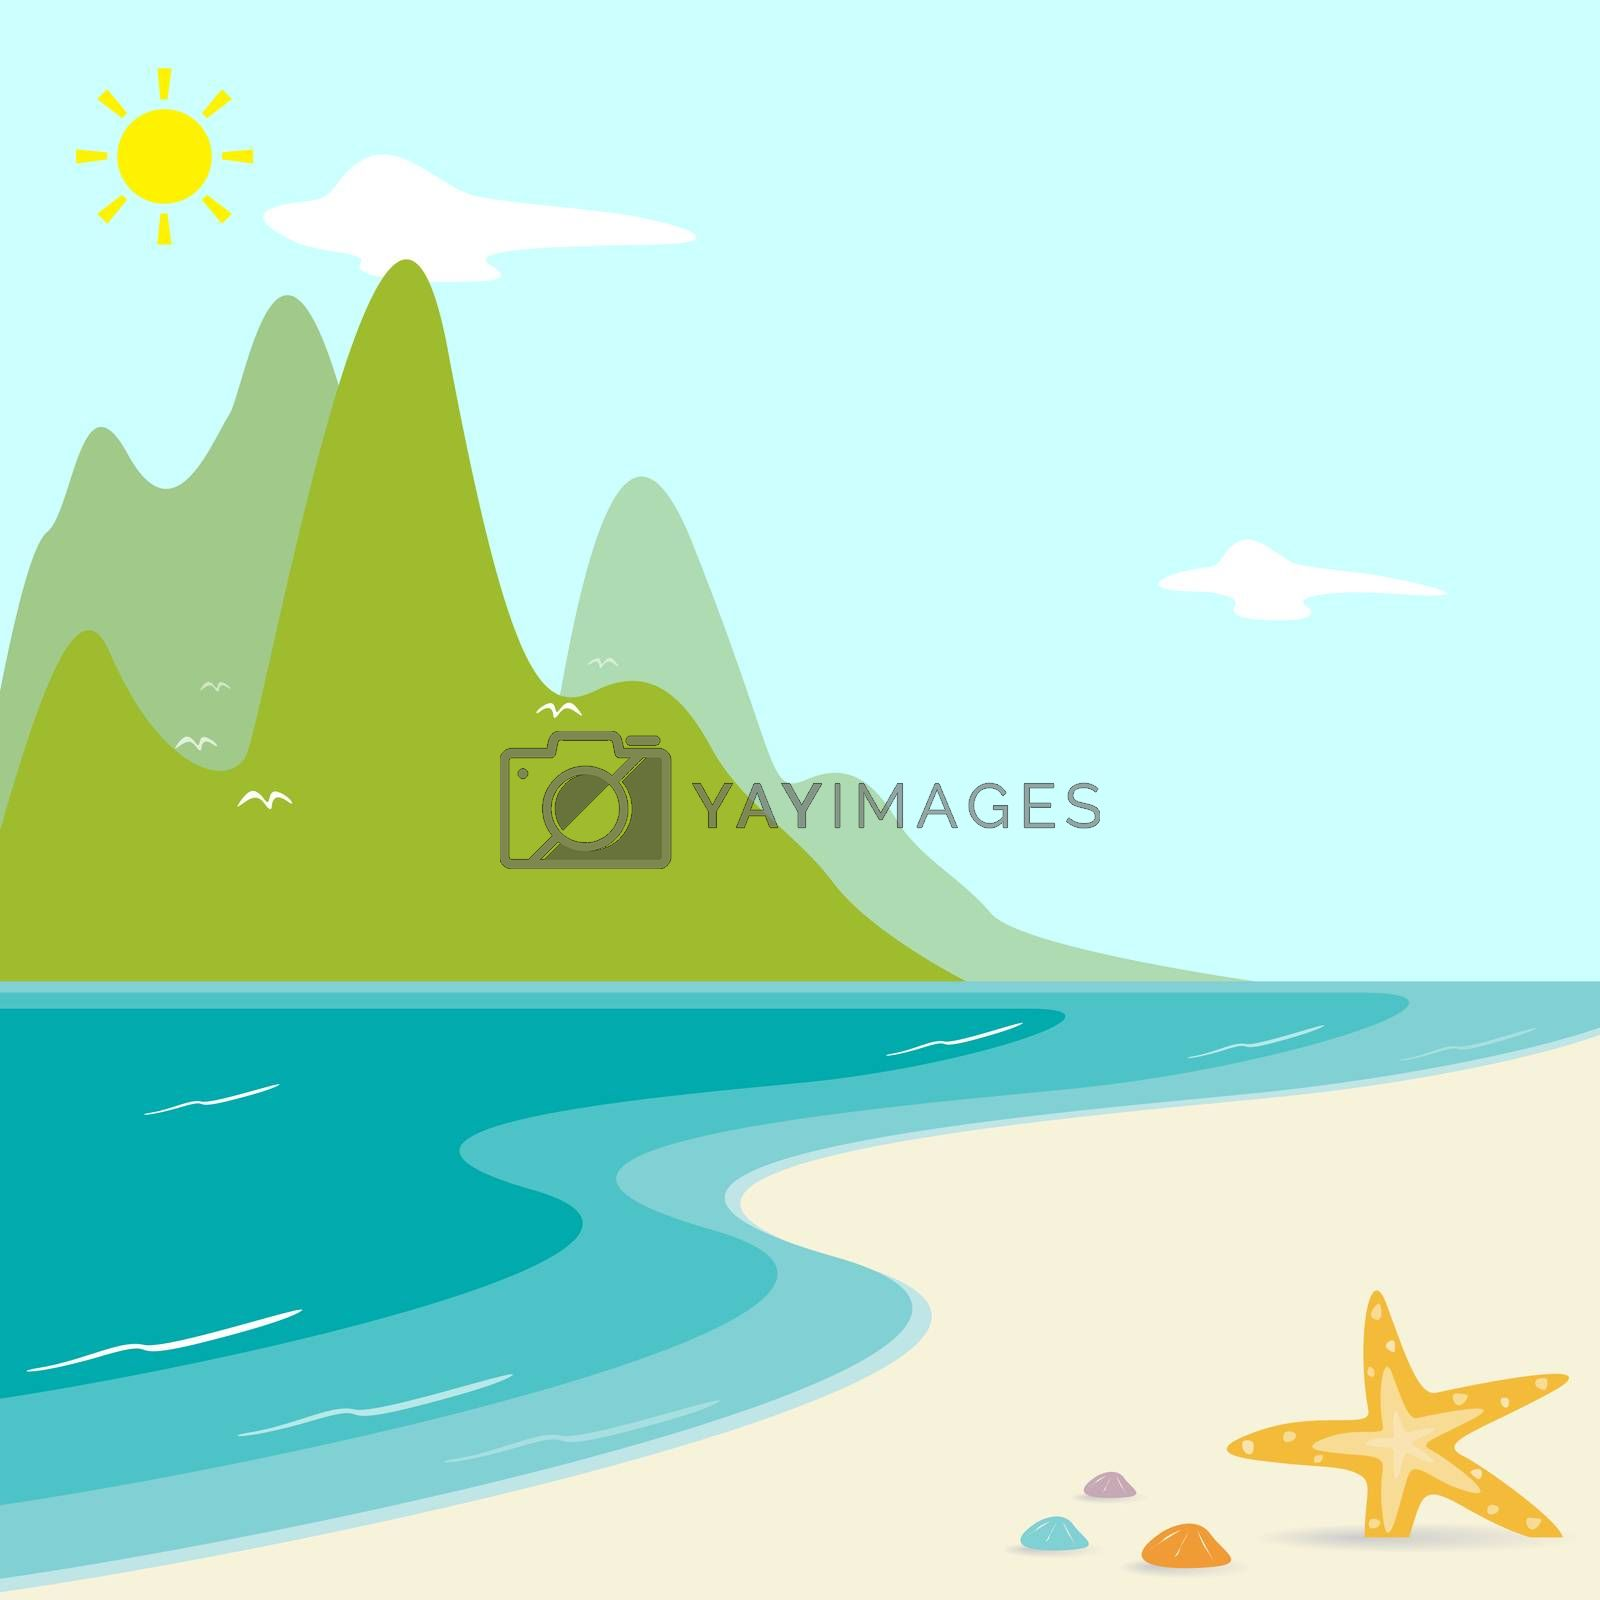 Royalty free image of beautiful beaches by photoexplorer